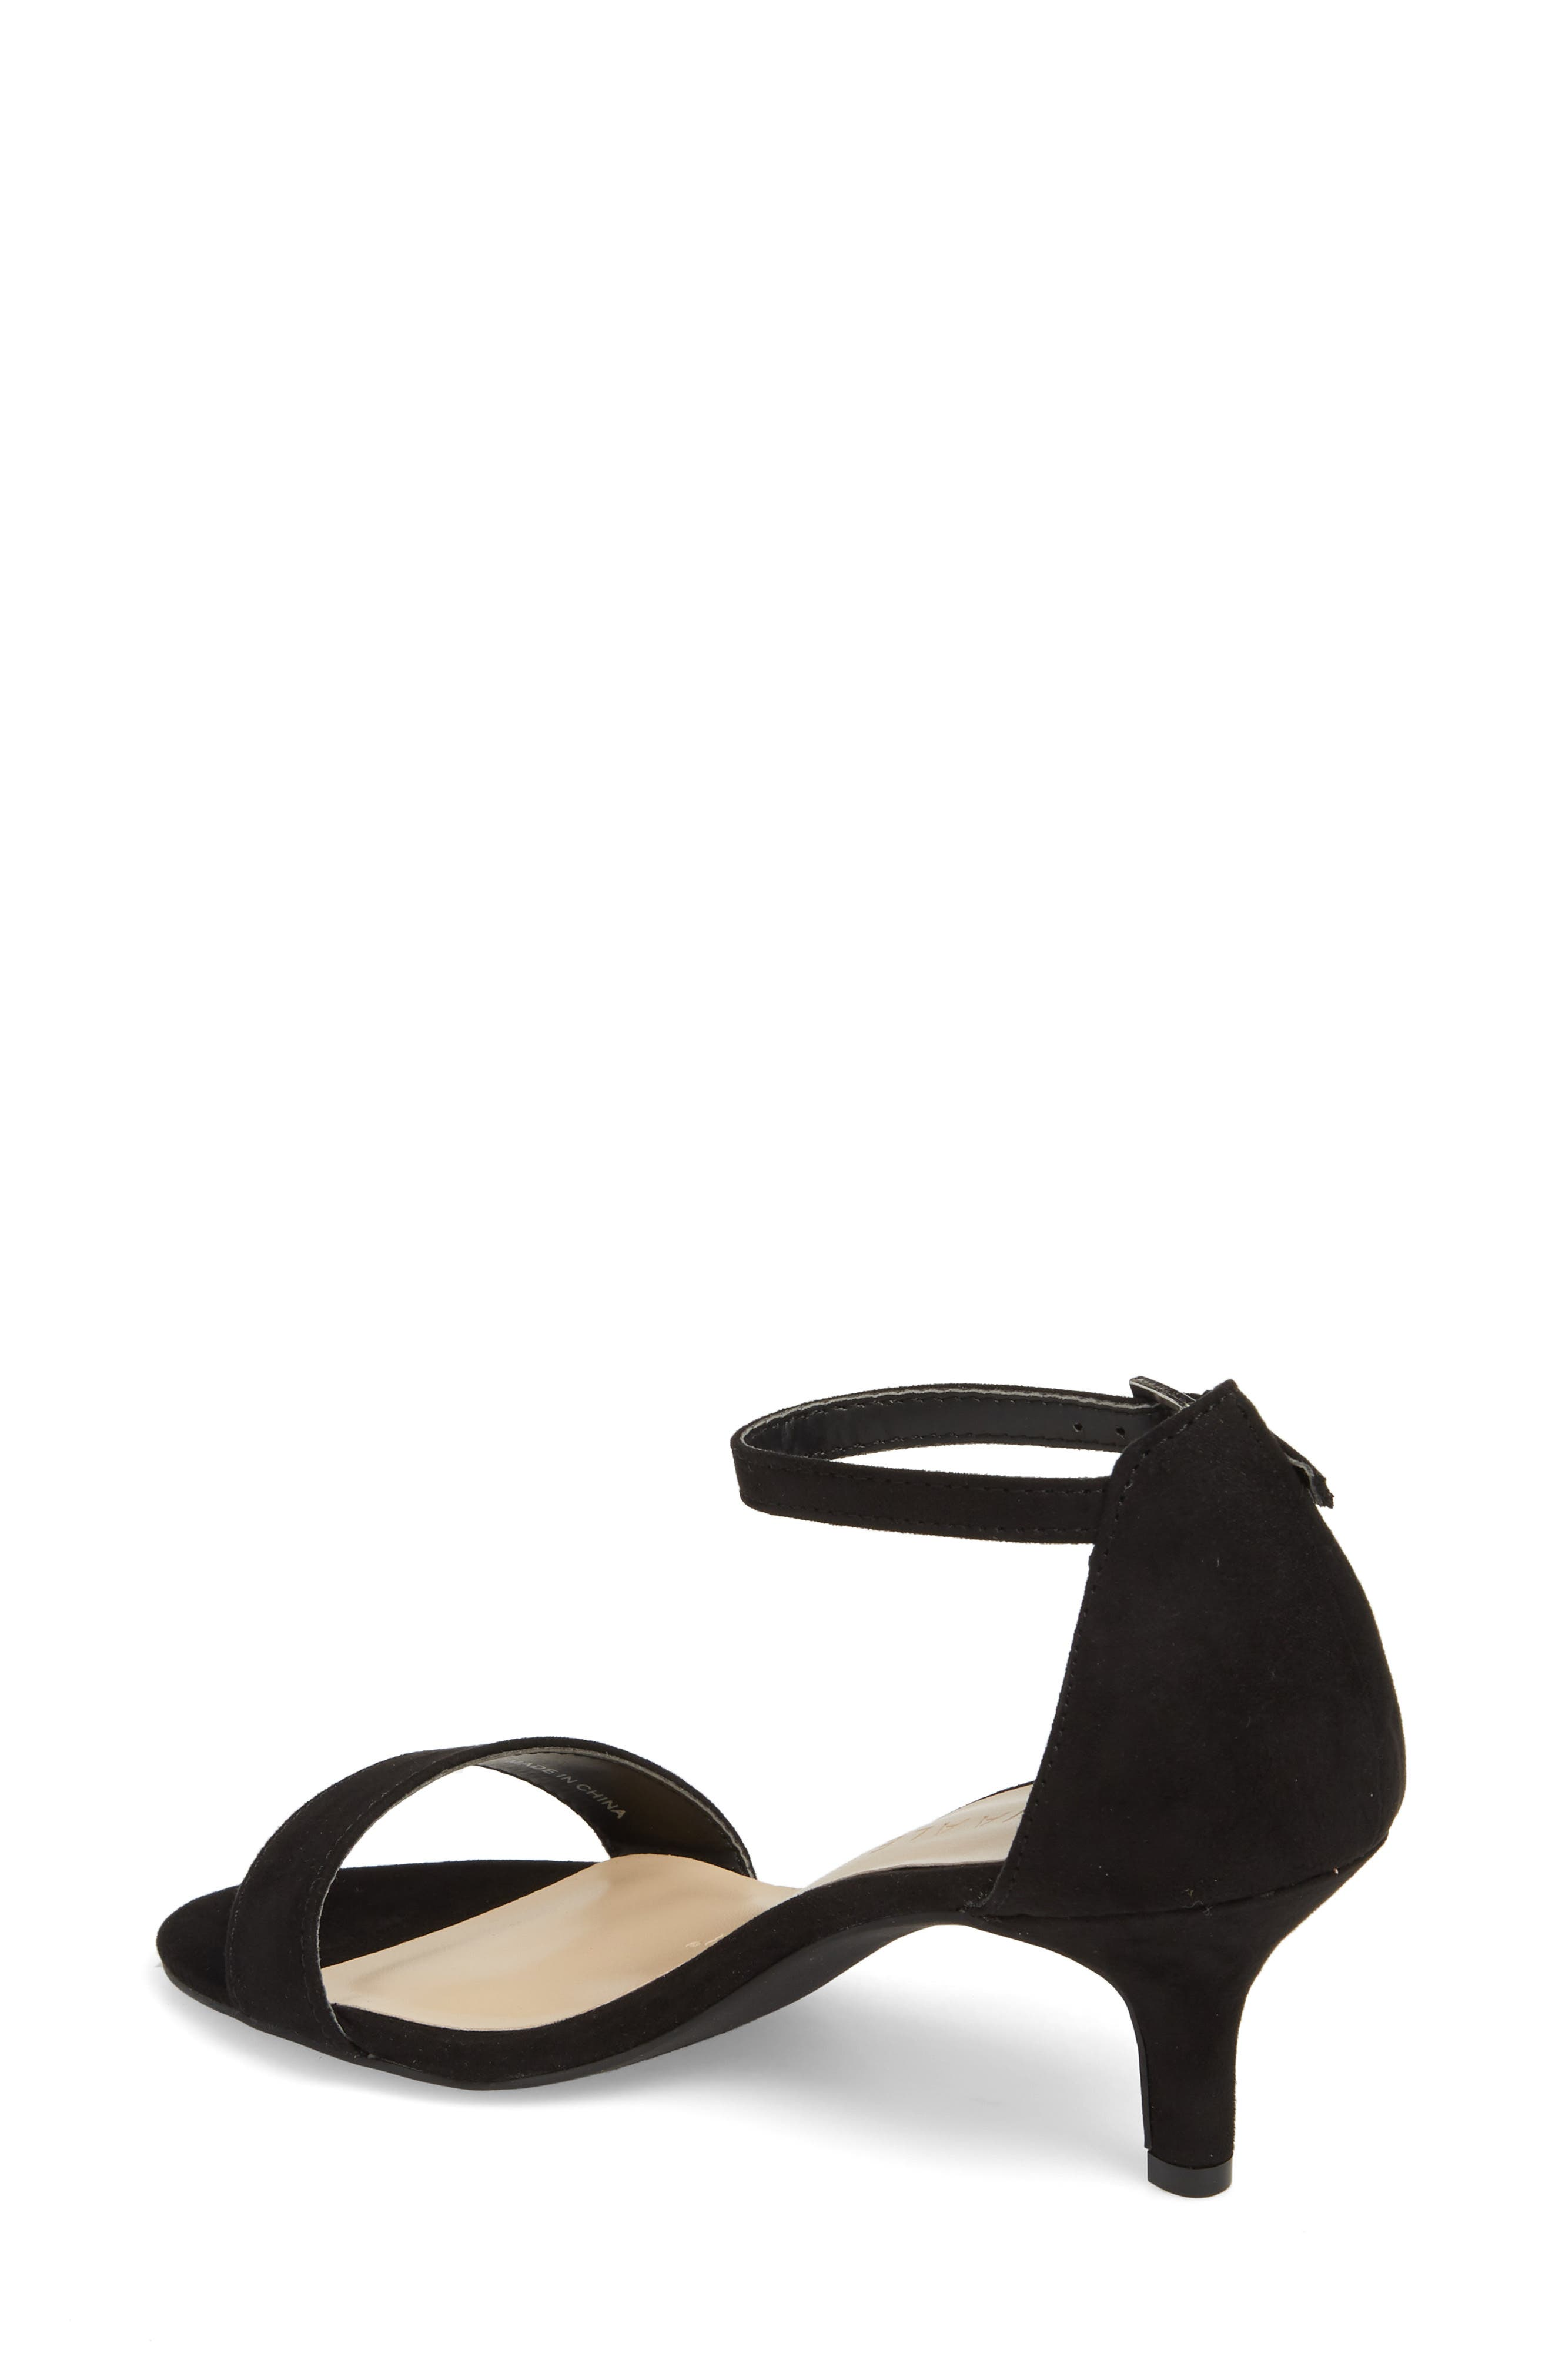 Monroe Sandal,                             Alternate thumbnail 2, color,                             BLACK SUEDE